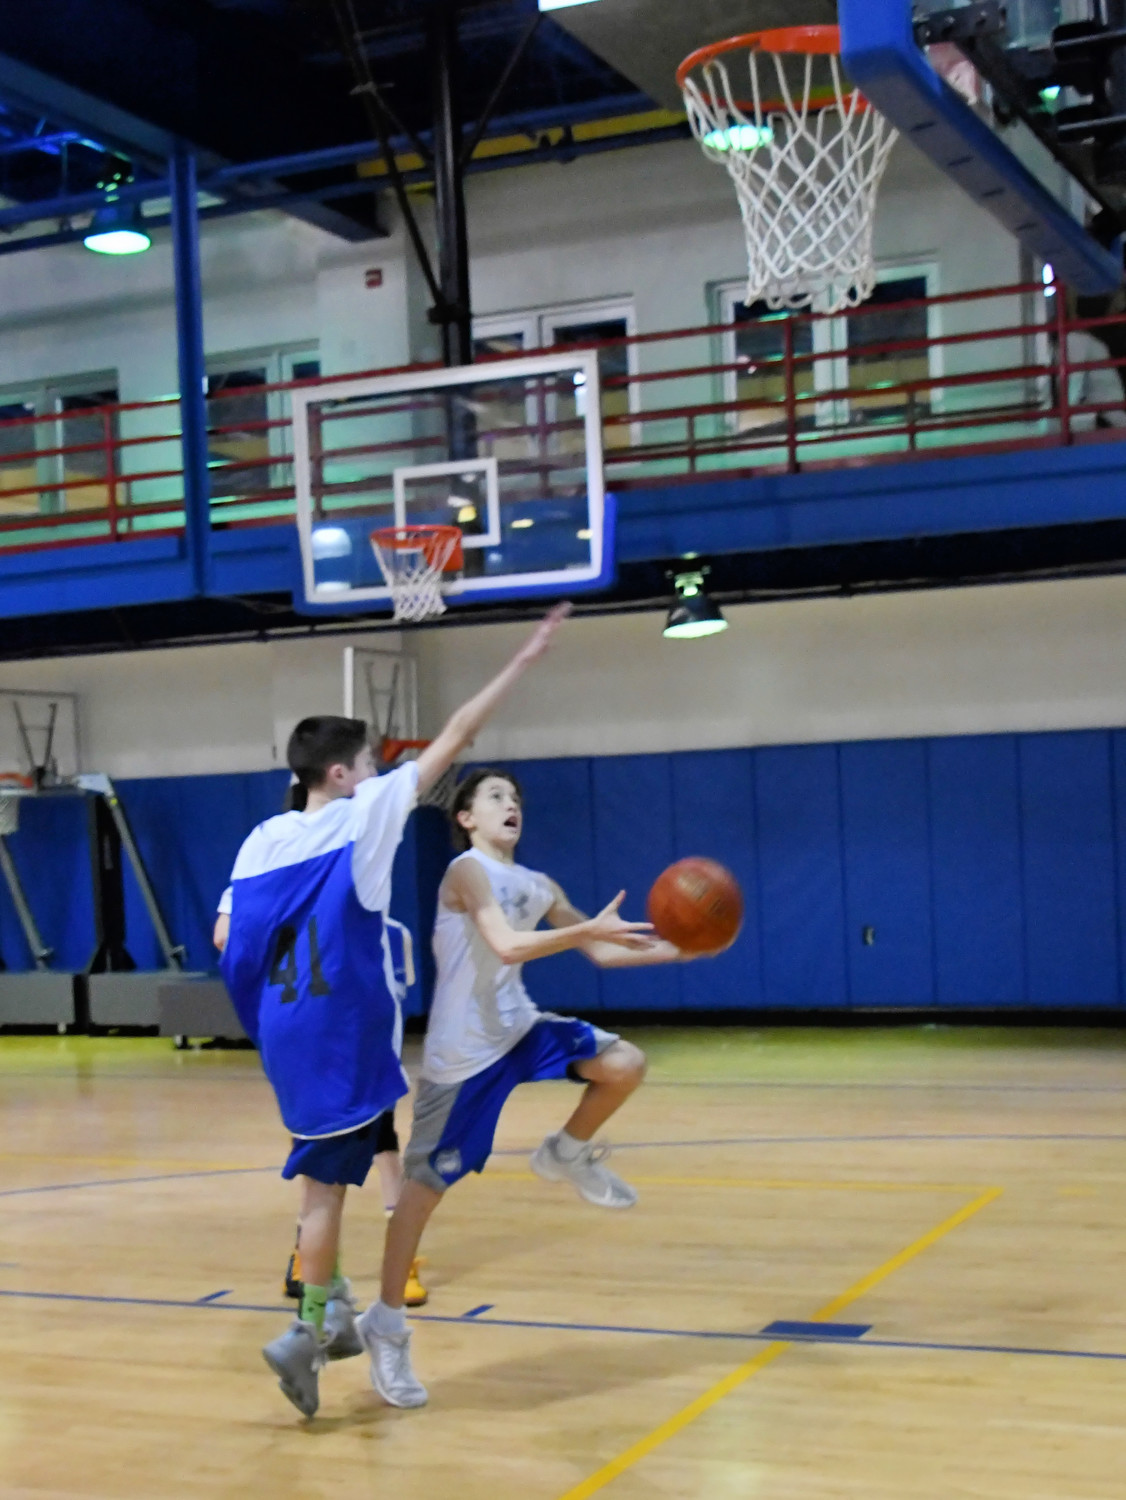 During the middle school game, a player moved in for a layup shot.